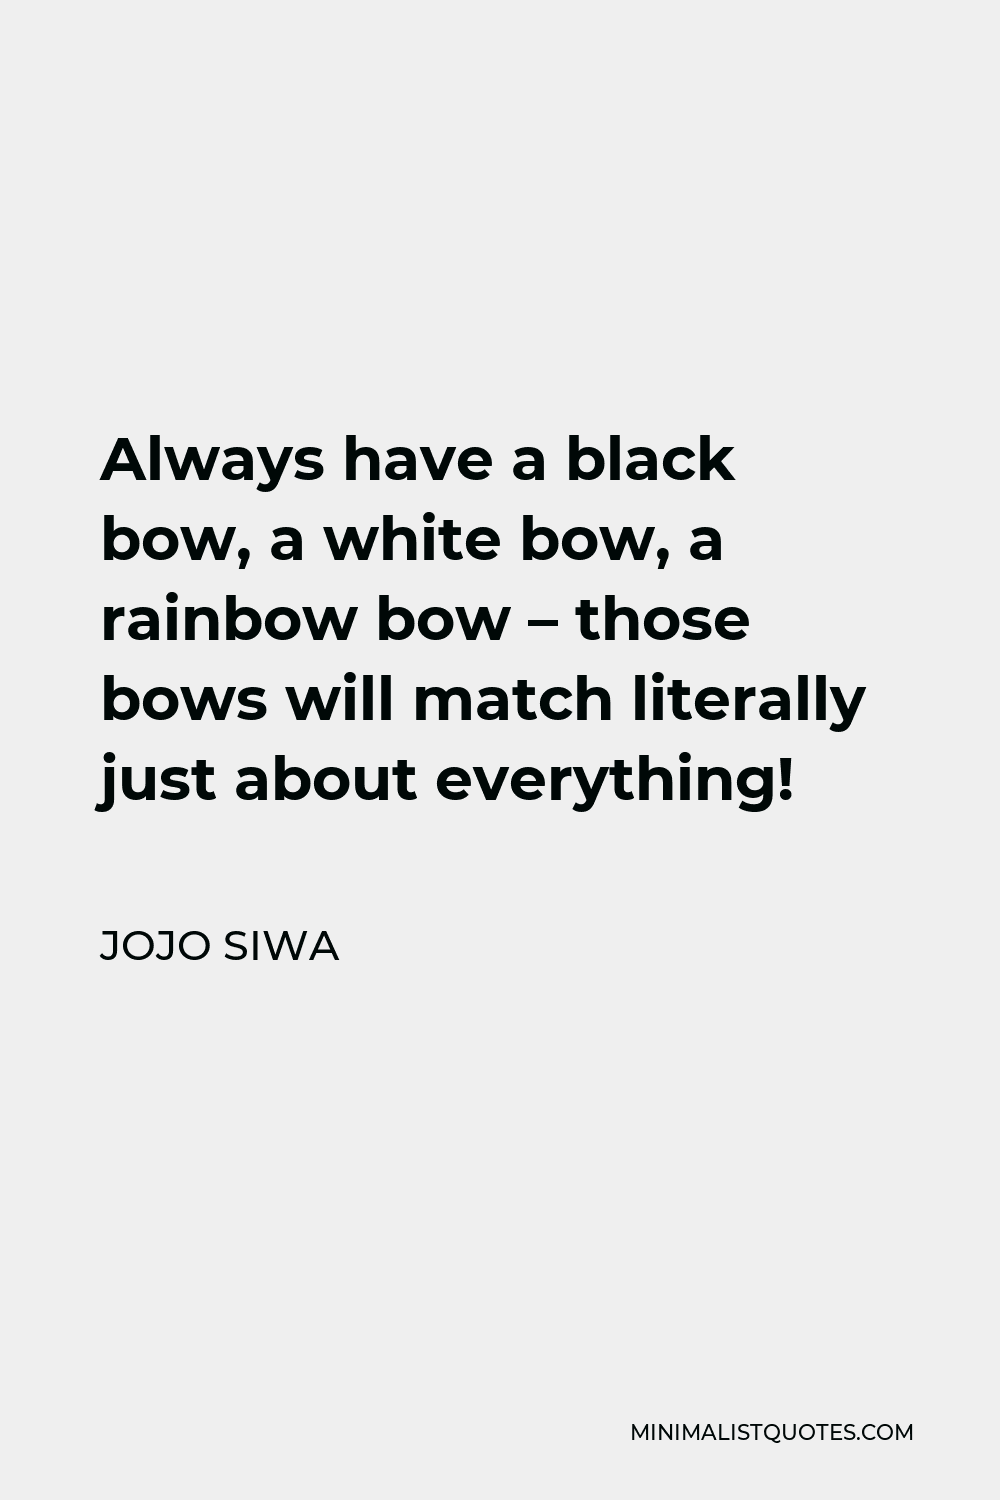 JoJo Siwa Quote - Always have a black bow, a white bow, a rainbow bow – those bows will match literally just about everything!